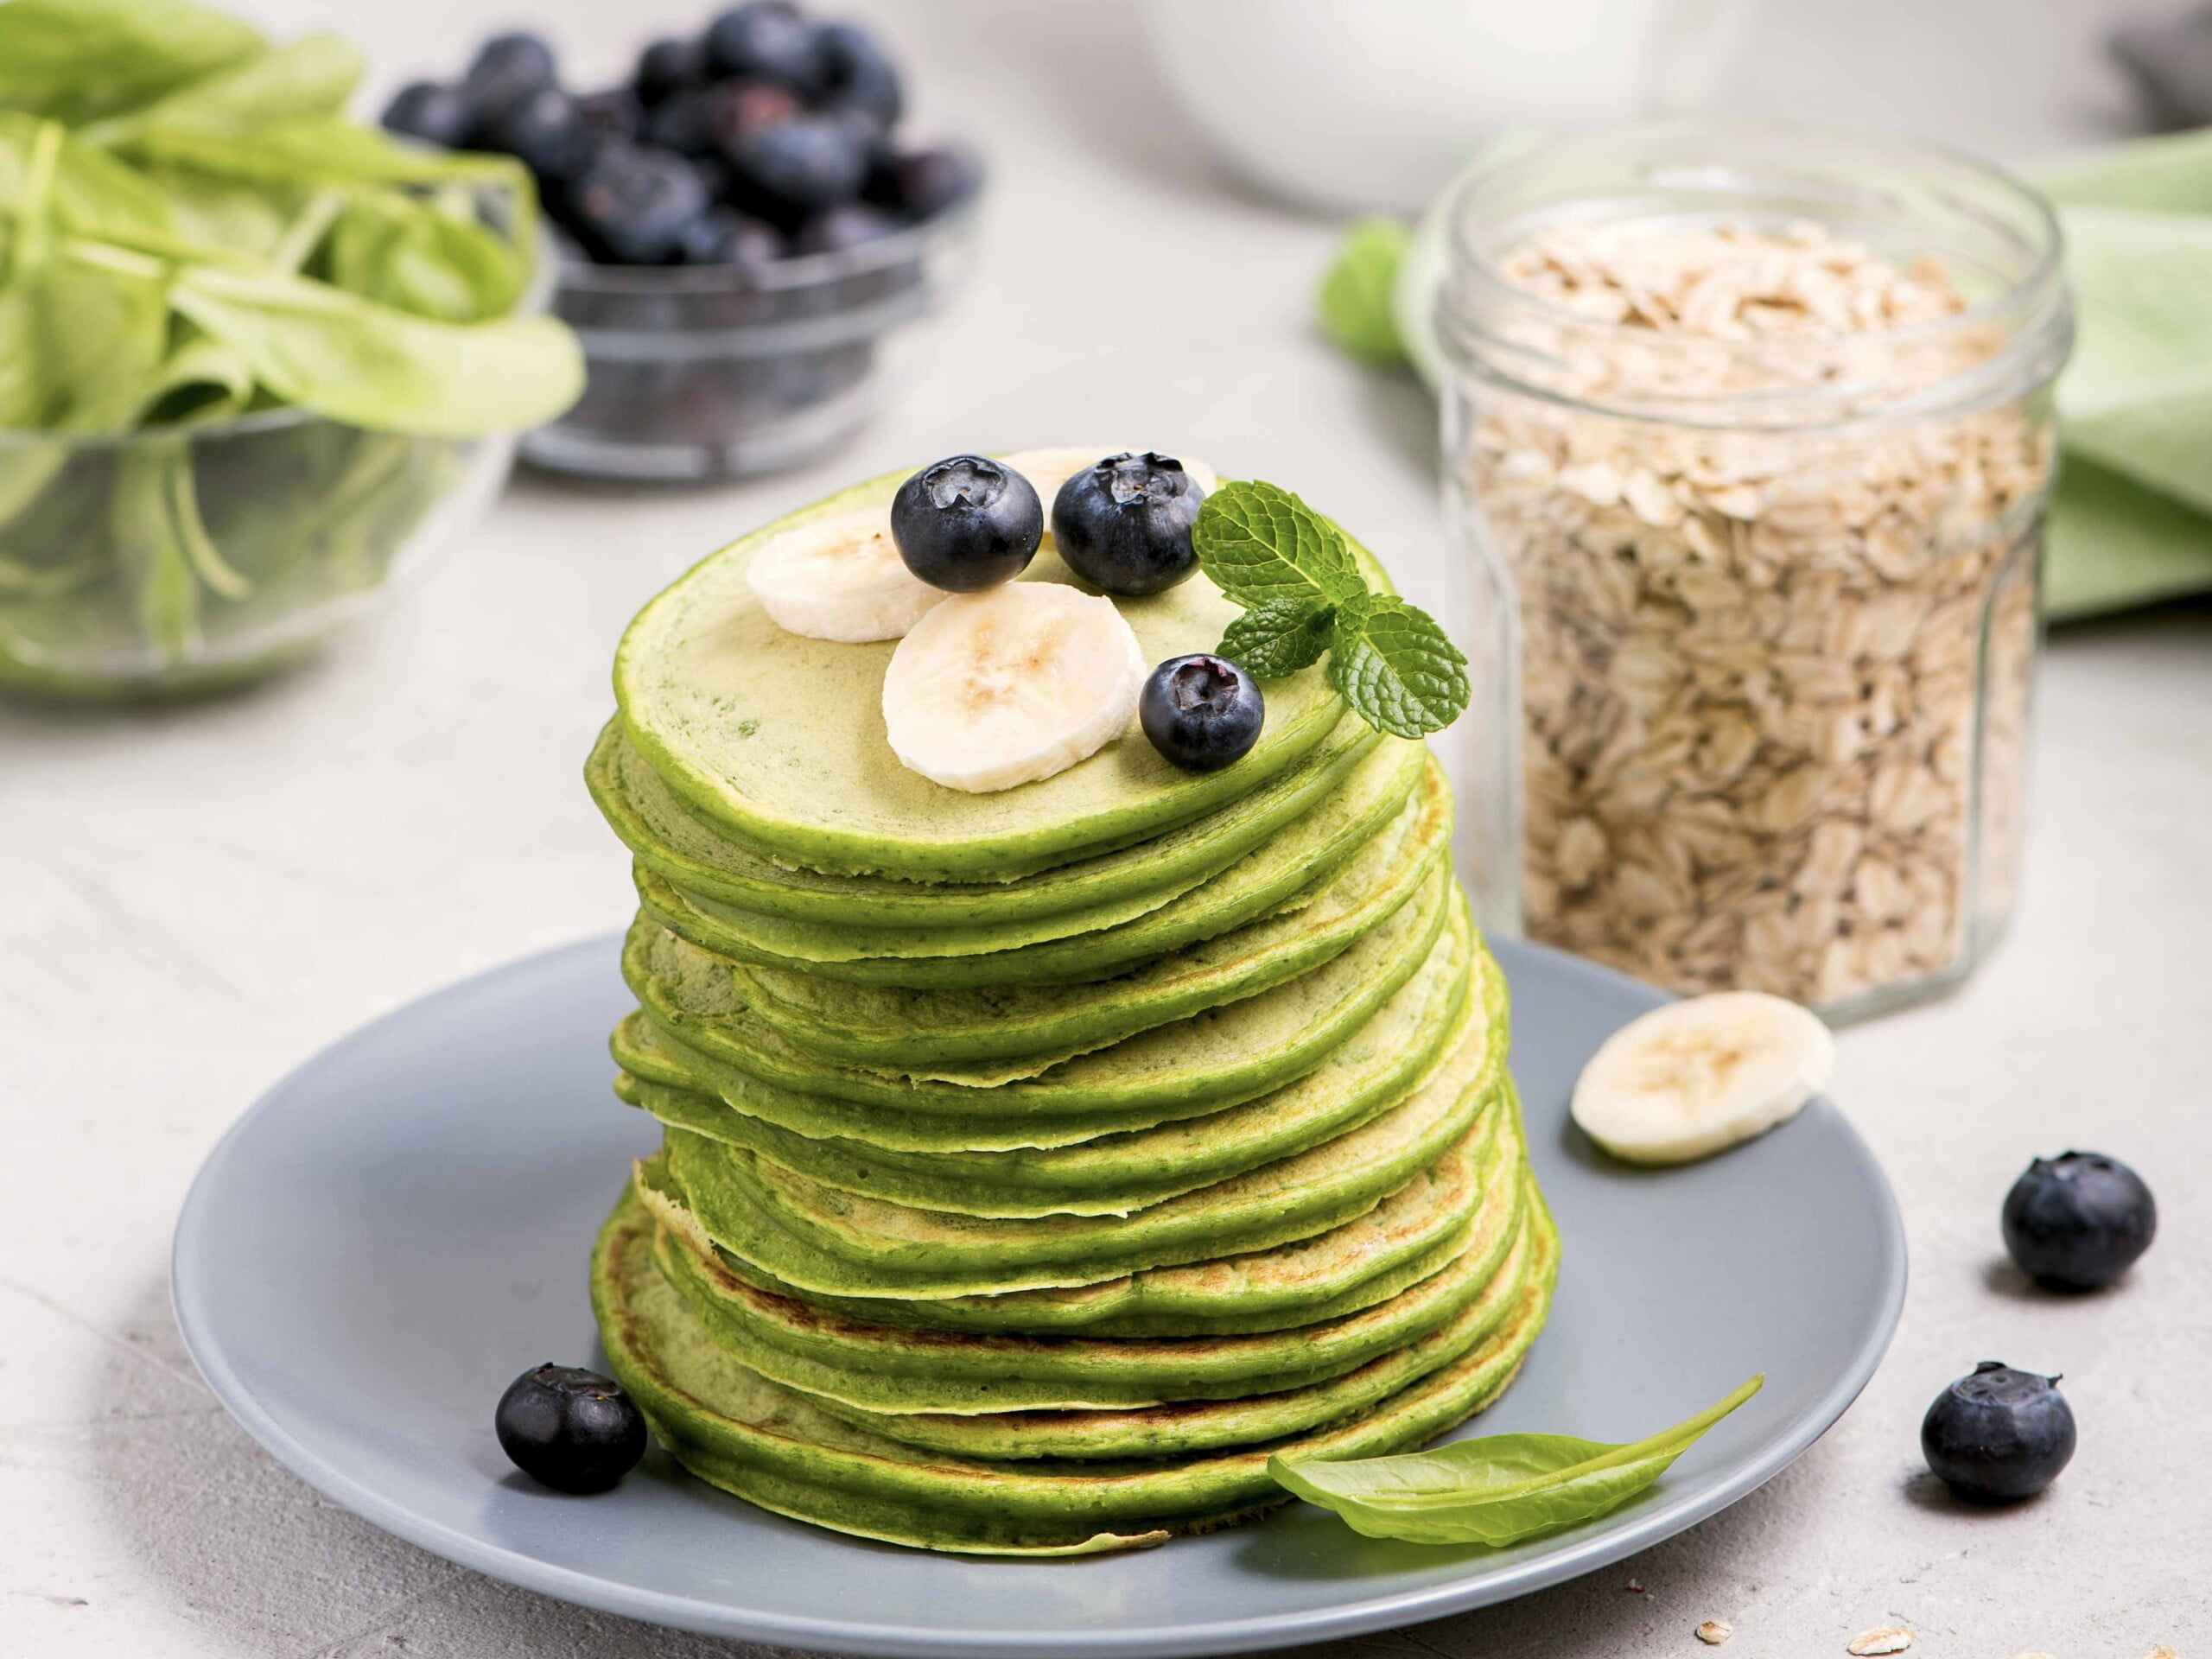 Green healthy spinach pancakes